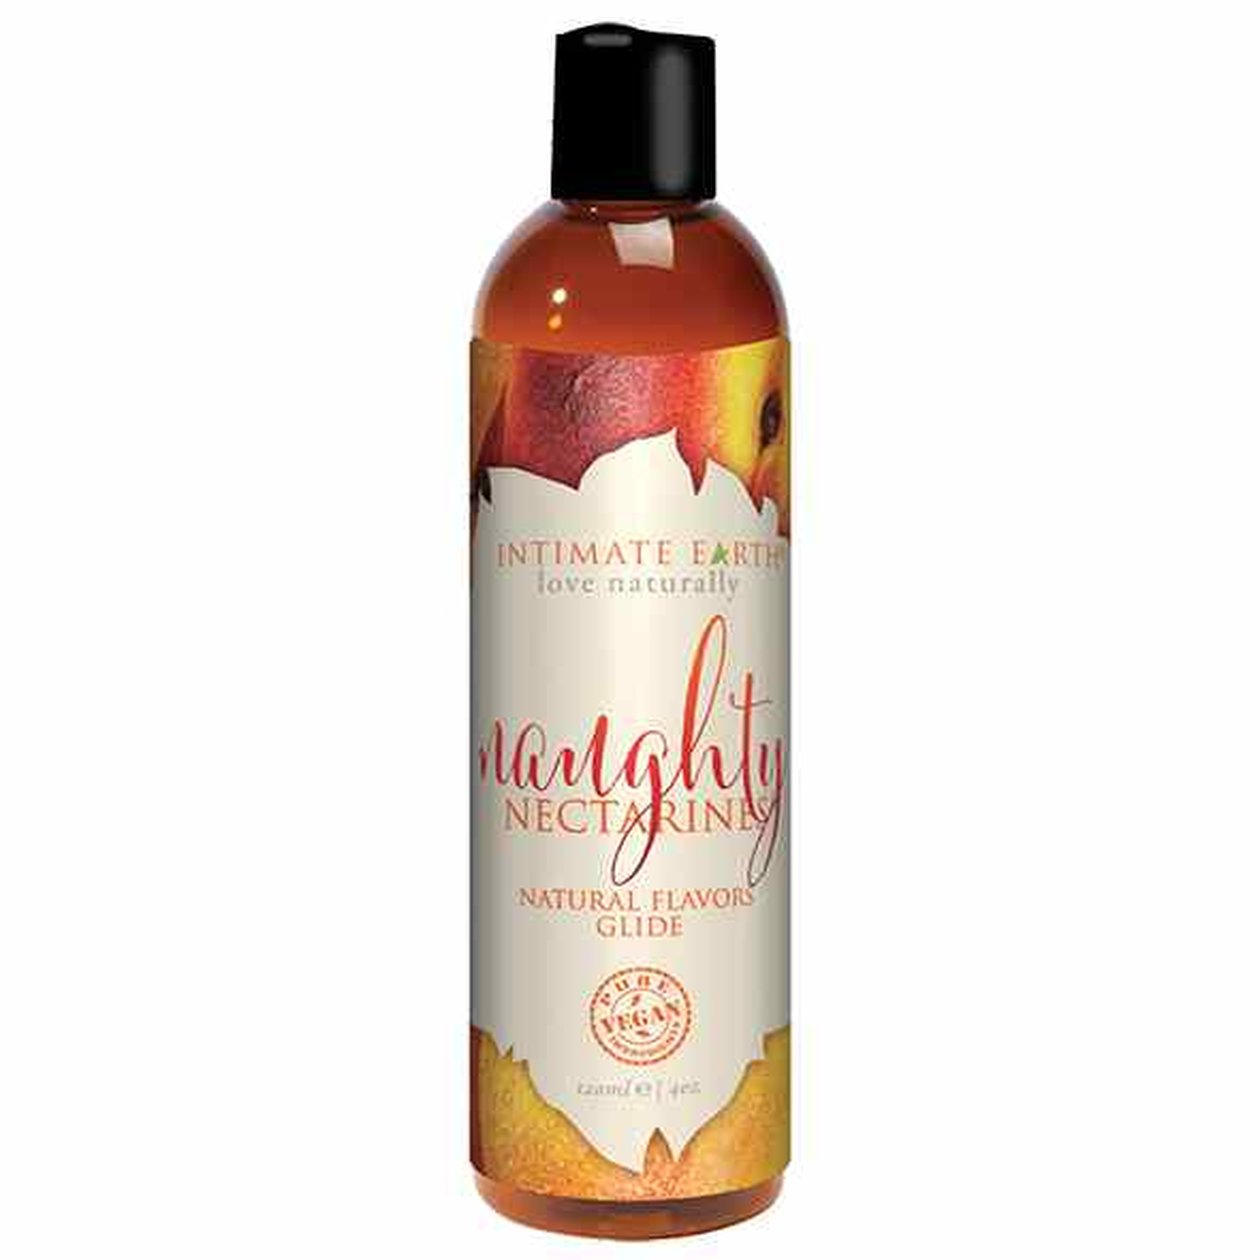 Intimate Earth - Natural Flavors Glide Naughty Nectarines...